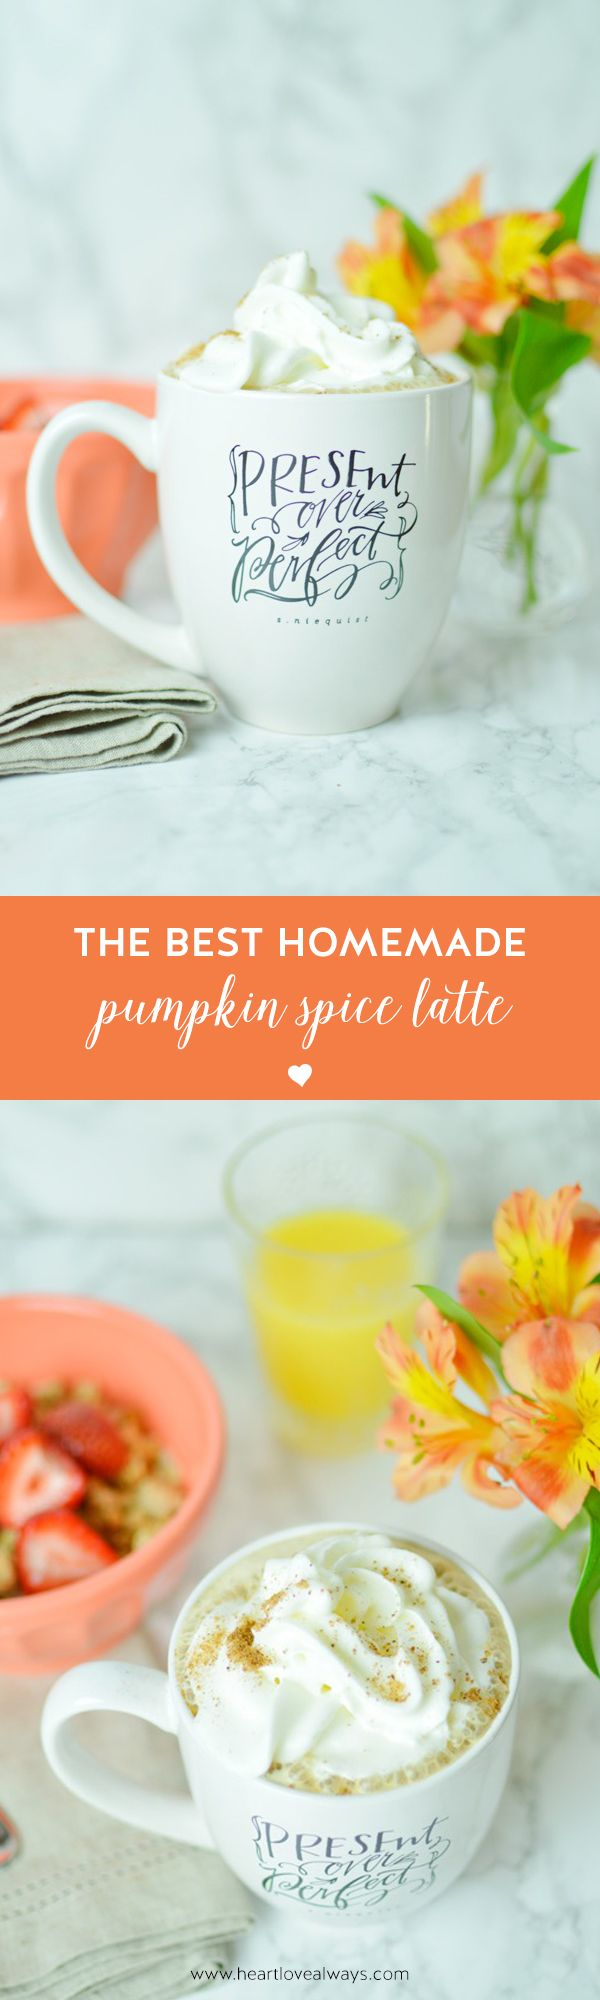 Boss Lady Cooks | The best homemade pumpkin spice latte--ever! Get the (easy) recipe on heartlovealways.com!